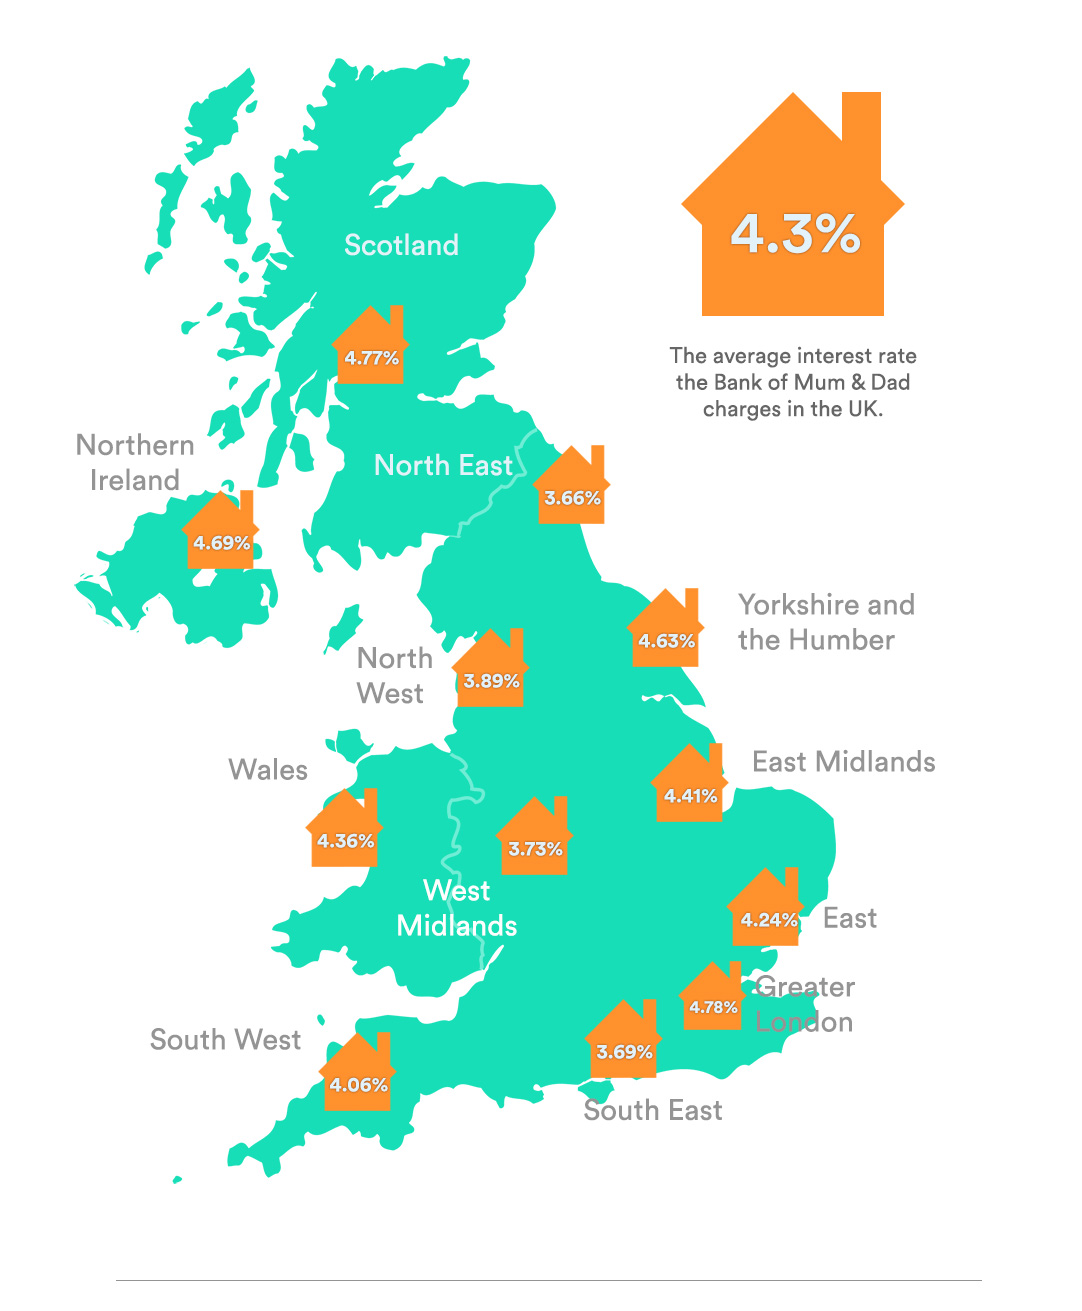 bank of mum and dad interest rates by UK region